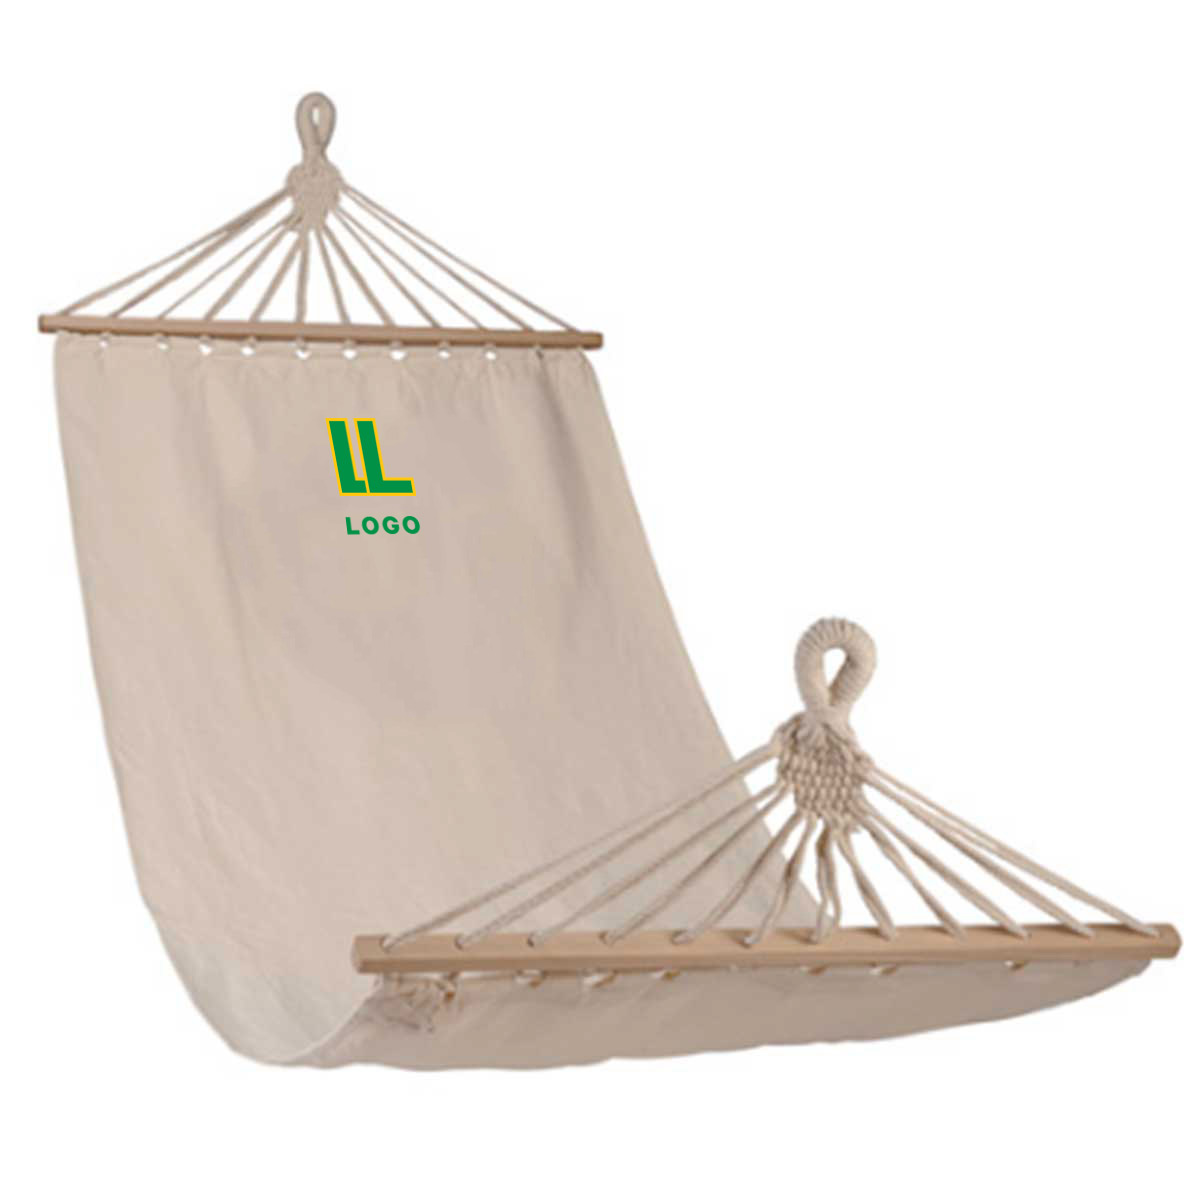 148019 unwind hammock full color imprint one location